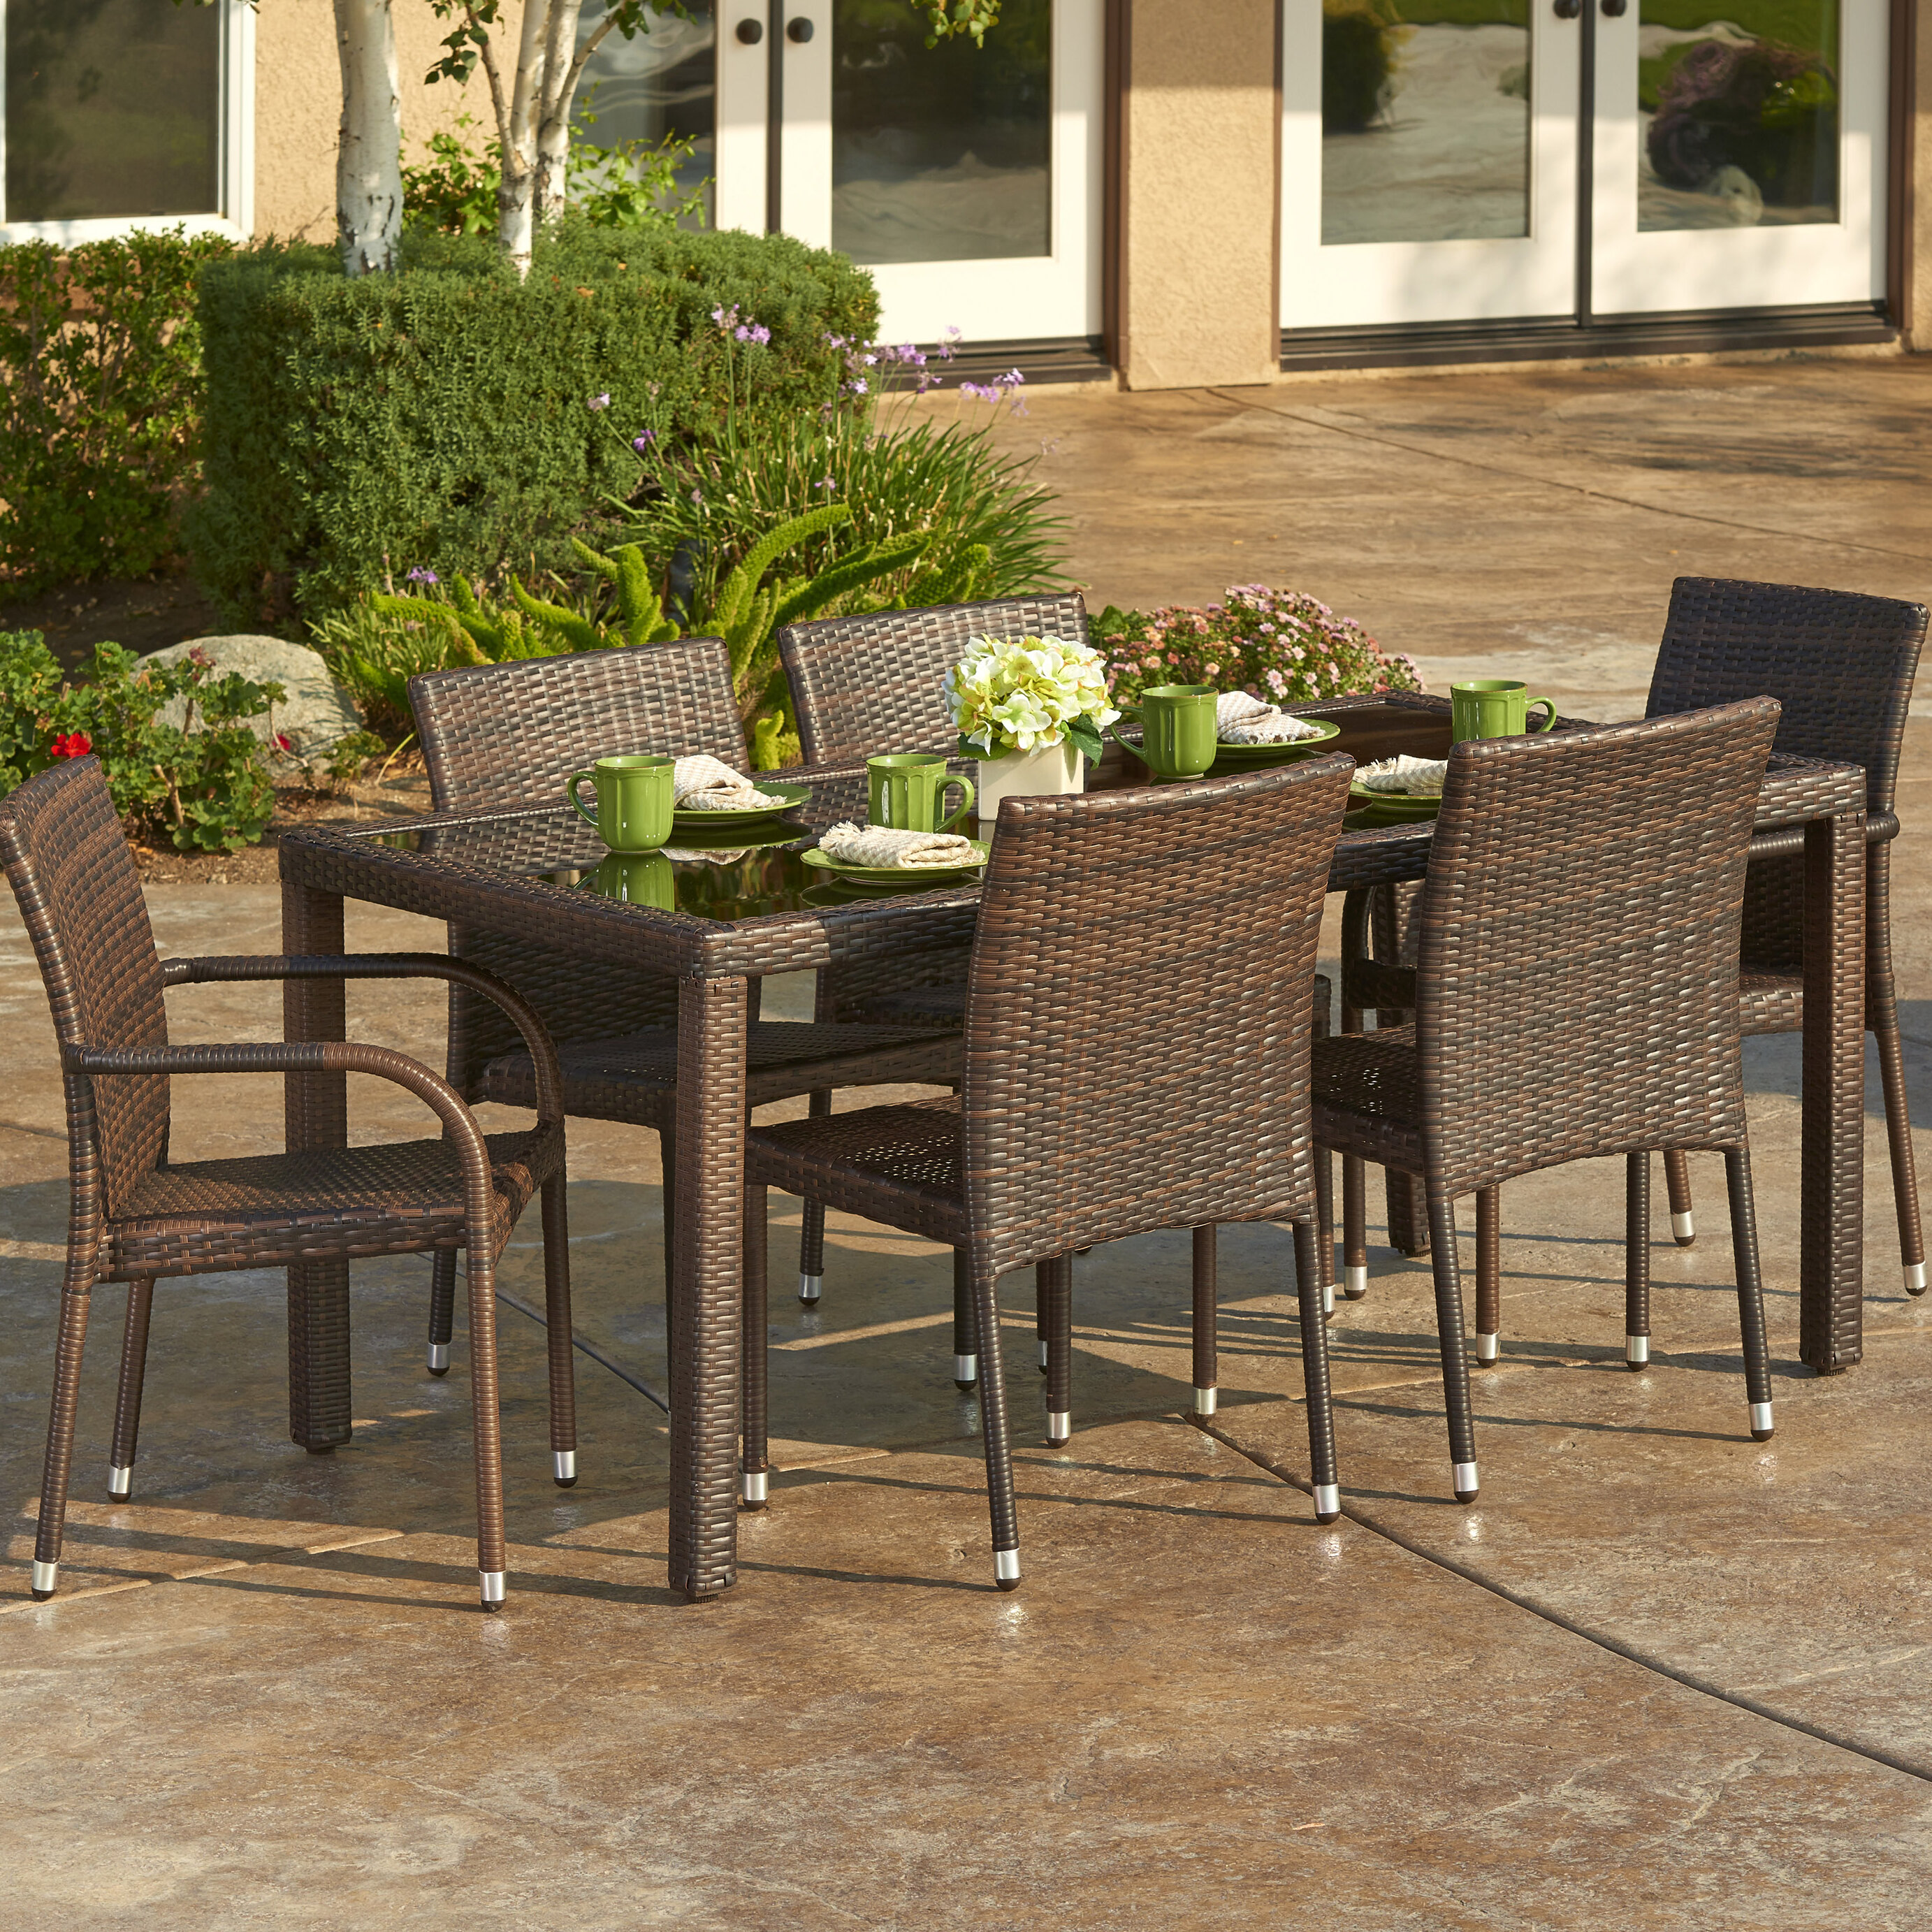 Delicieux W Unlimited 7 Piece Outdoor Wicker Dining Set | Wayfair